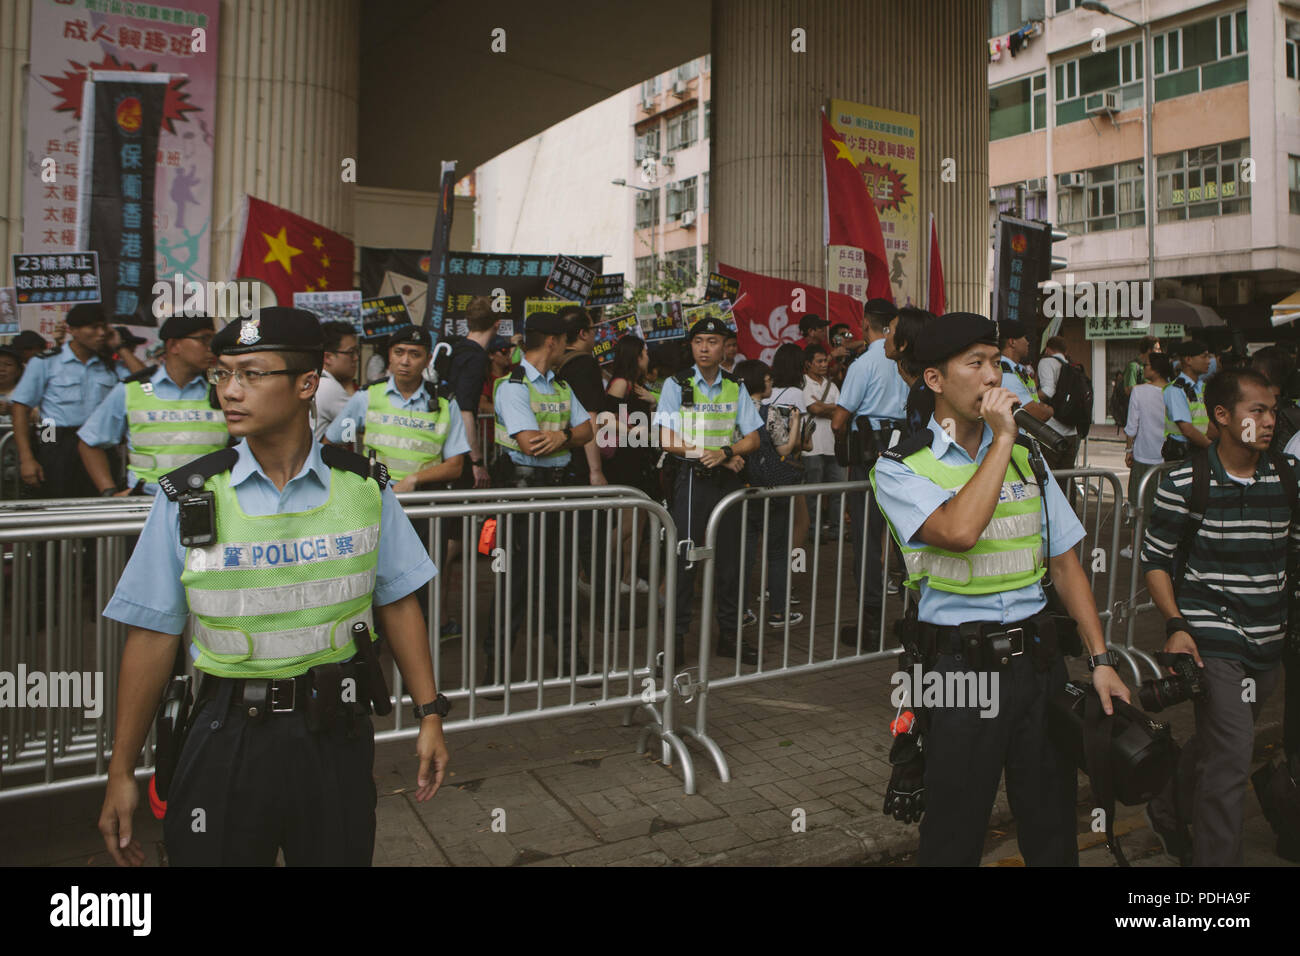 Hong Kong, Hong Kong. 30th June, 2017. Police staff seen around the area where the ceremony was held.Thousands came together and demonstrated to mark the 20th anniversary of the Handover from Britain to China, Hong Kong's return to China on July 1st 1997. The protestors marched through sun and rain from Victoria Park to Admiralty, taking a stand on a variety of human-rights-related causes. Credit: Viola Gaskell/SOPA Images/ZUMA Wire/Alamy Live News - Stock Image